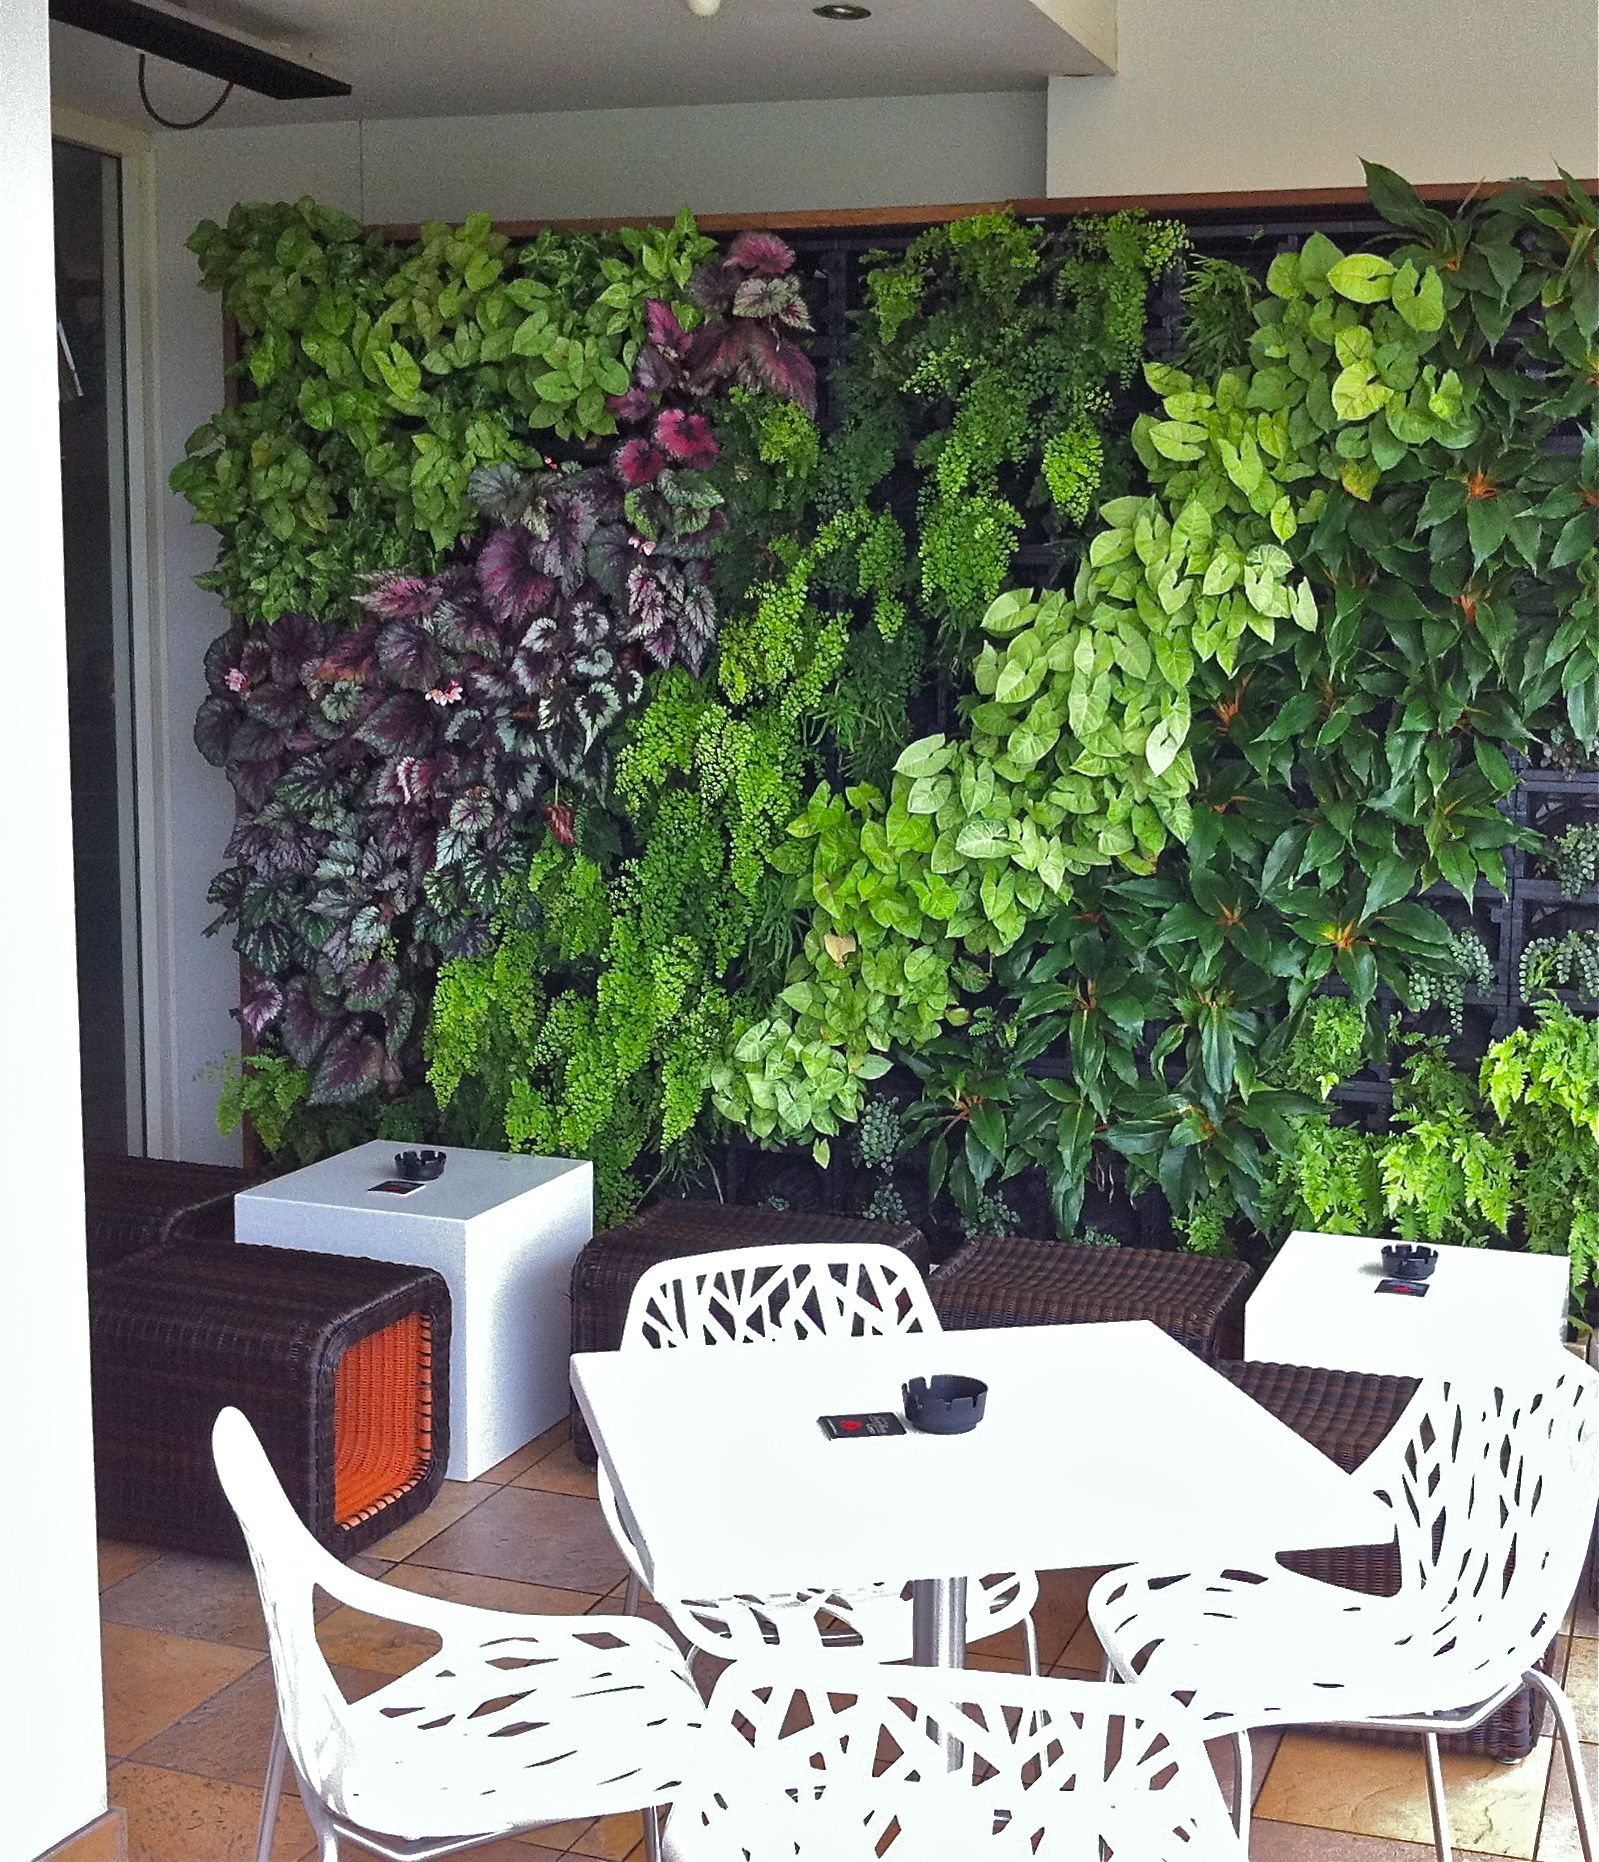 Green wall garden green roof garden vertical garden Indoor living wall herb garden